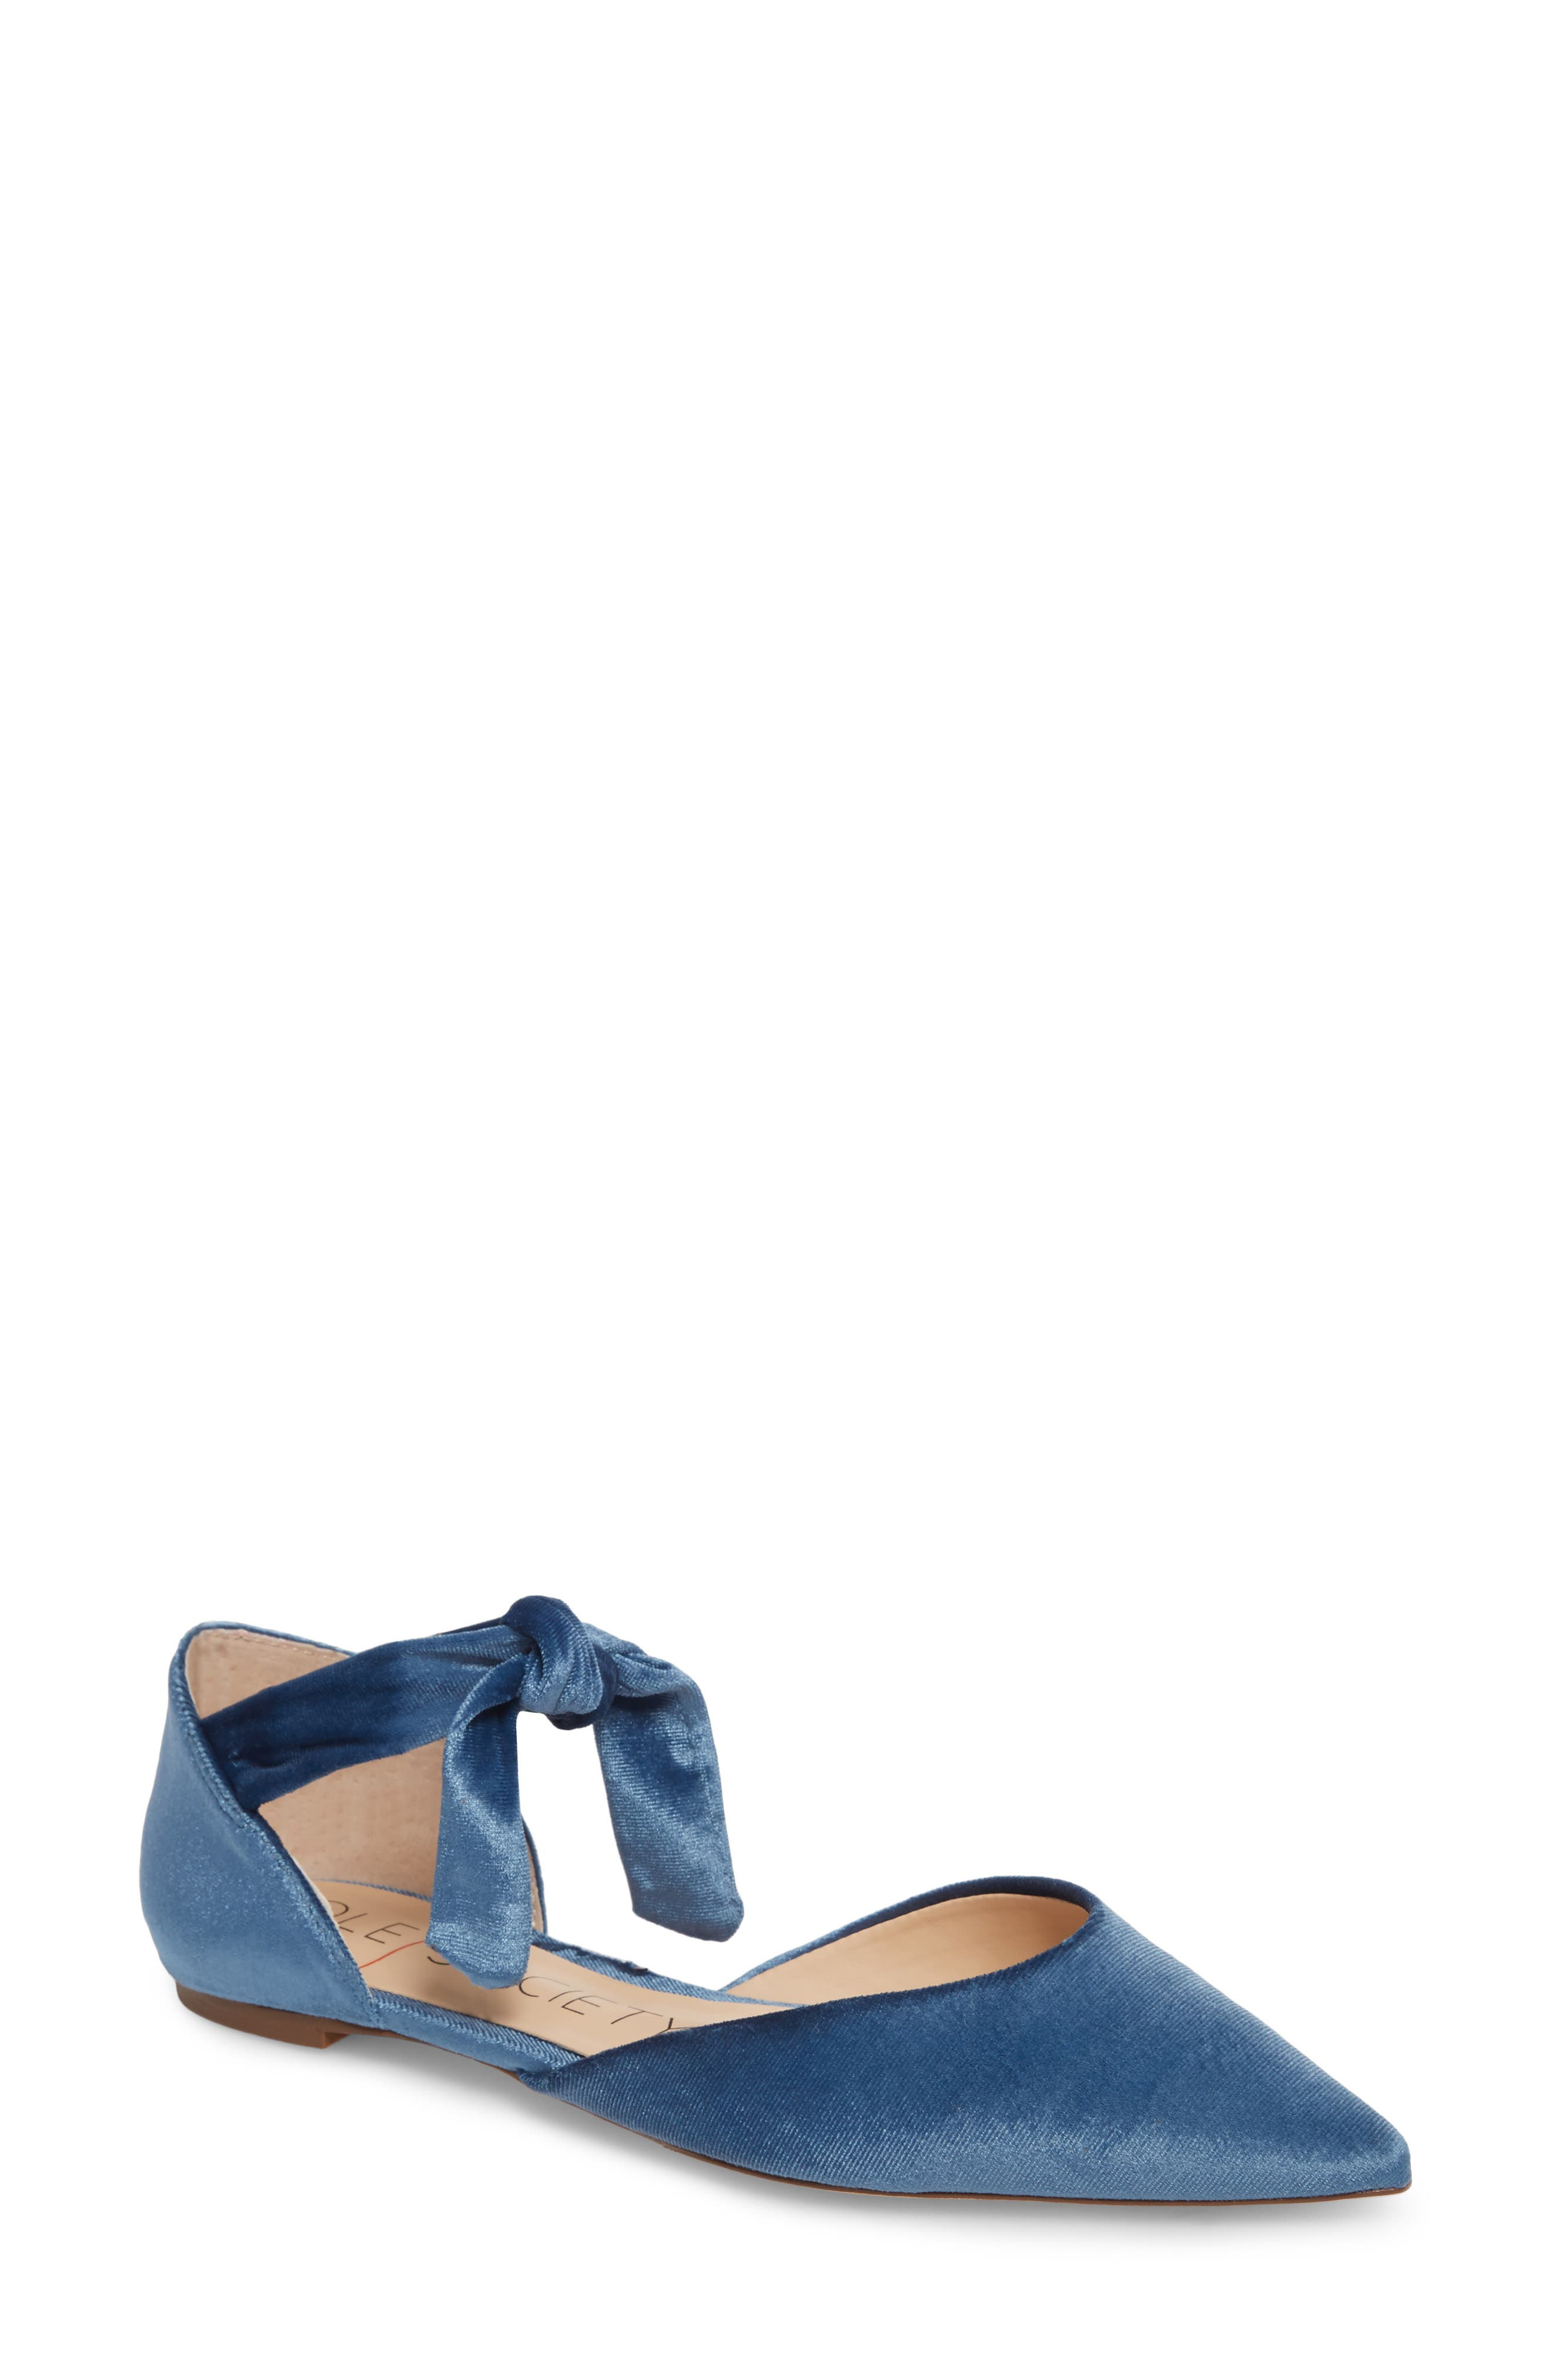 Sole Society Teena d'Orsay Flat with Ties (Women)